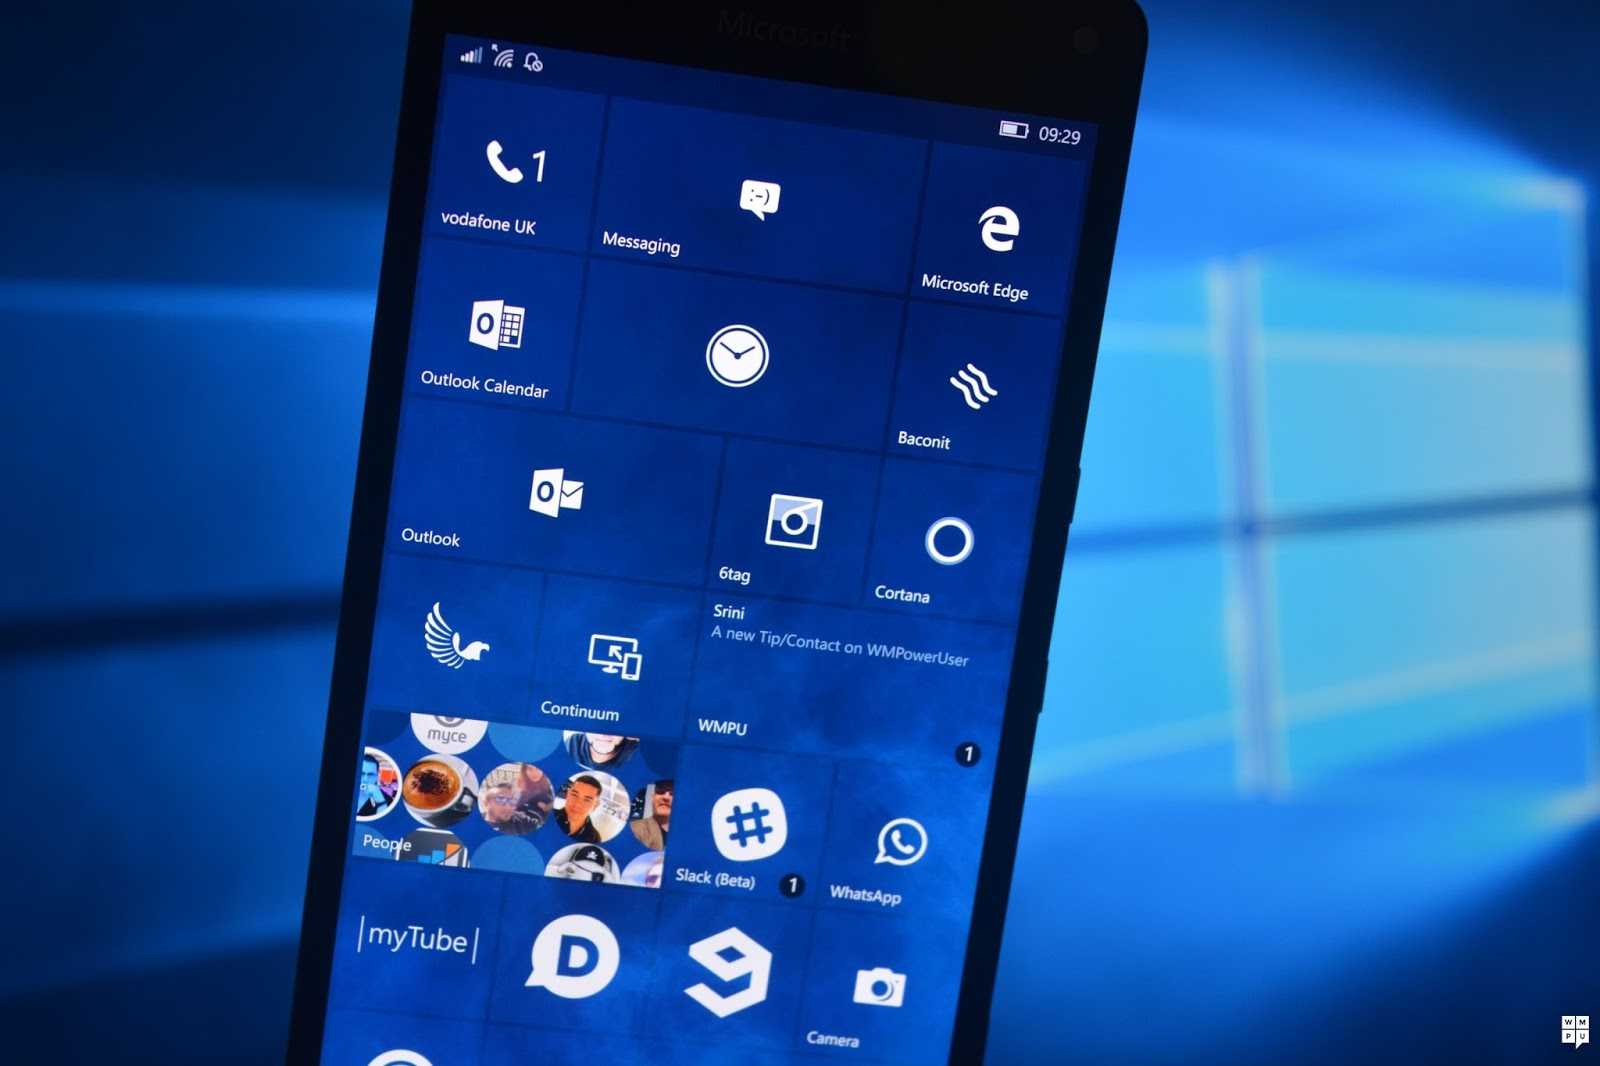 How to Change Wallpaper in Windows 10 Mobile - How to Get Help in ...